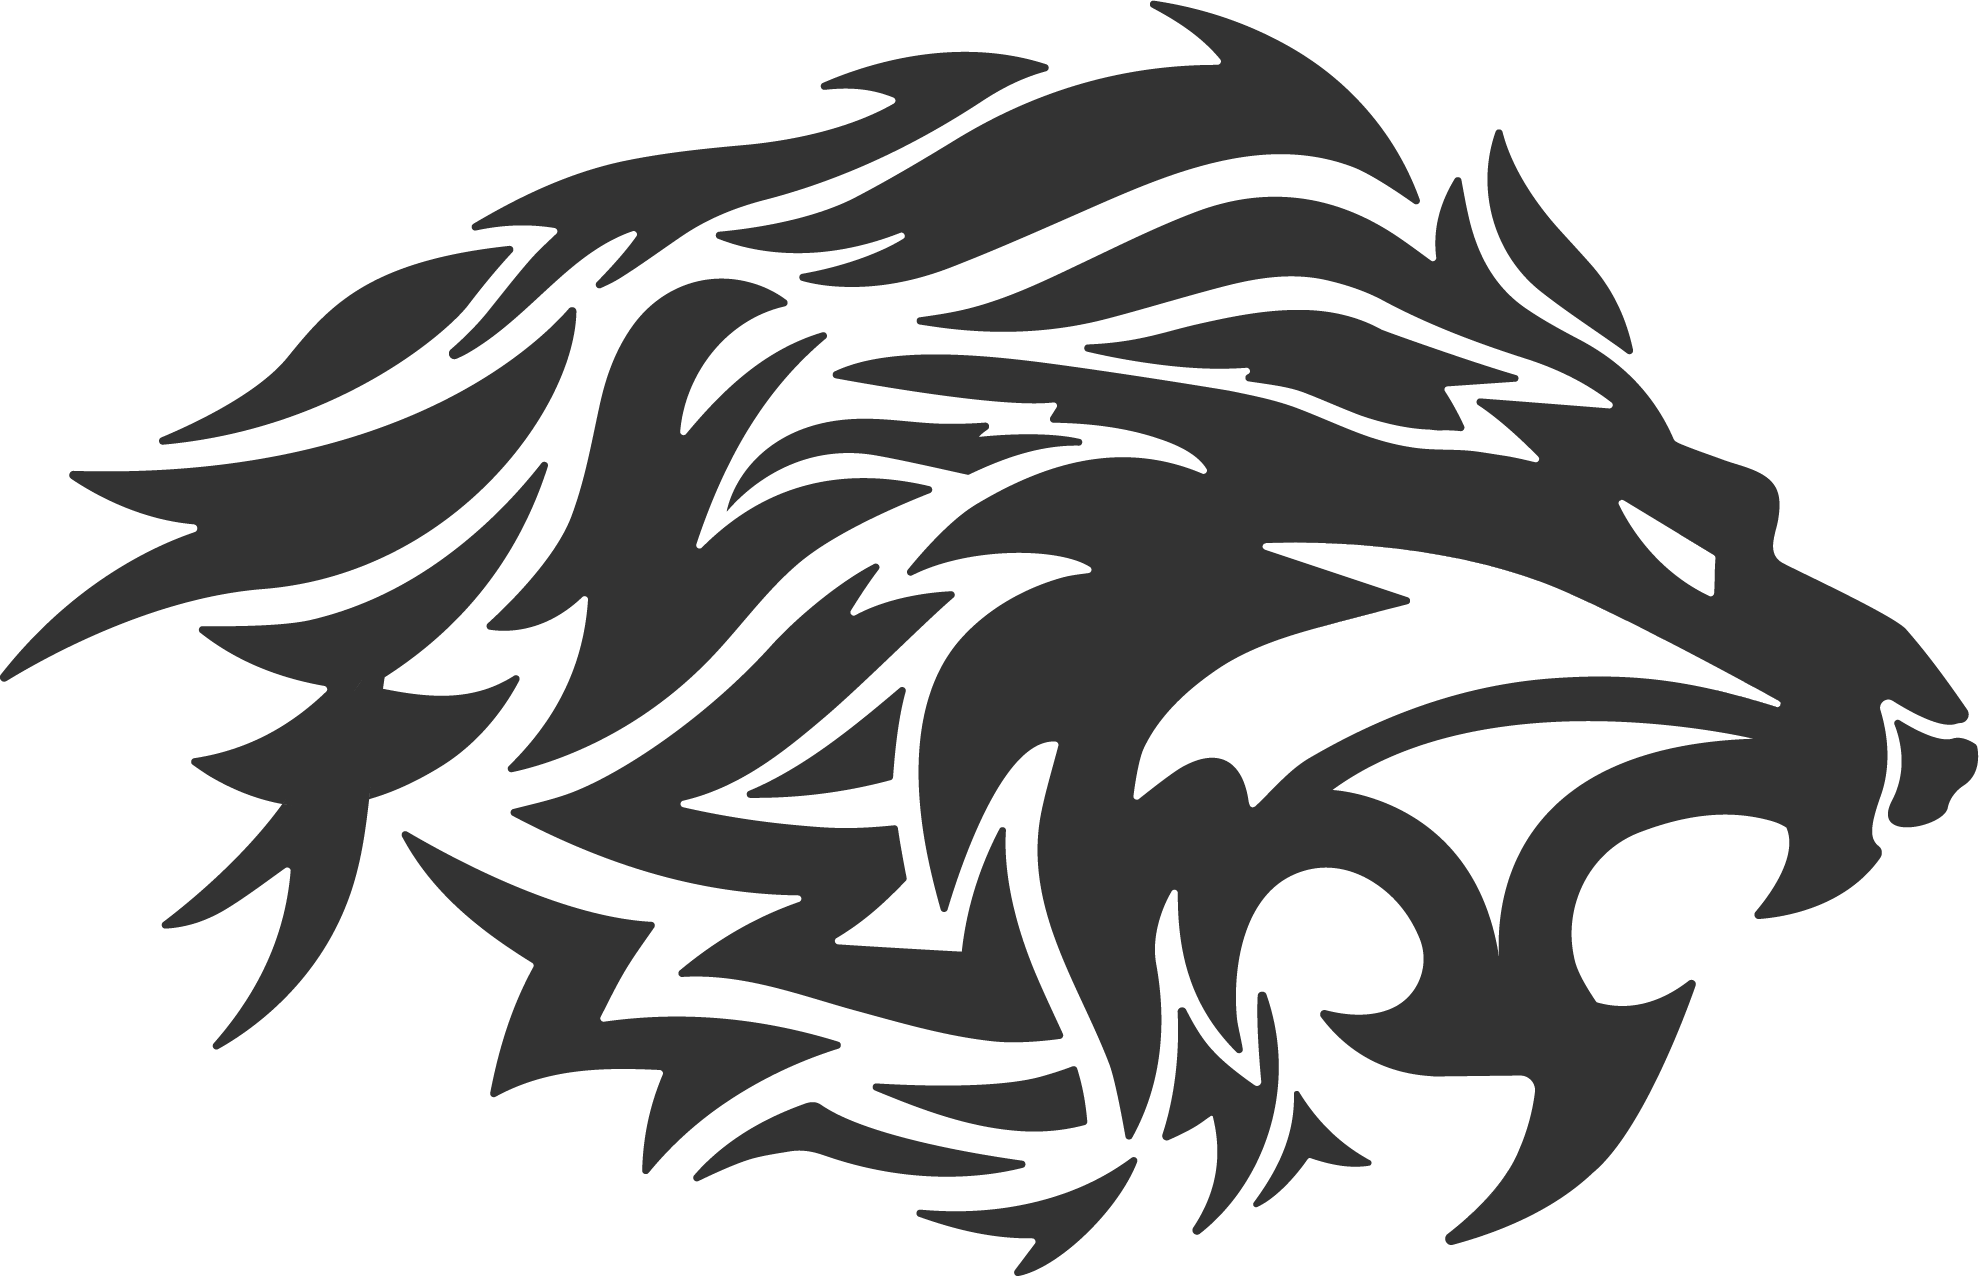 Lion Tattoo Clipart PNG Image 03 210x135-Lion Tattoo Clipart PNG Image 03 210x135 - Lion Tattoo PNG Transparent Free  Images-4